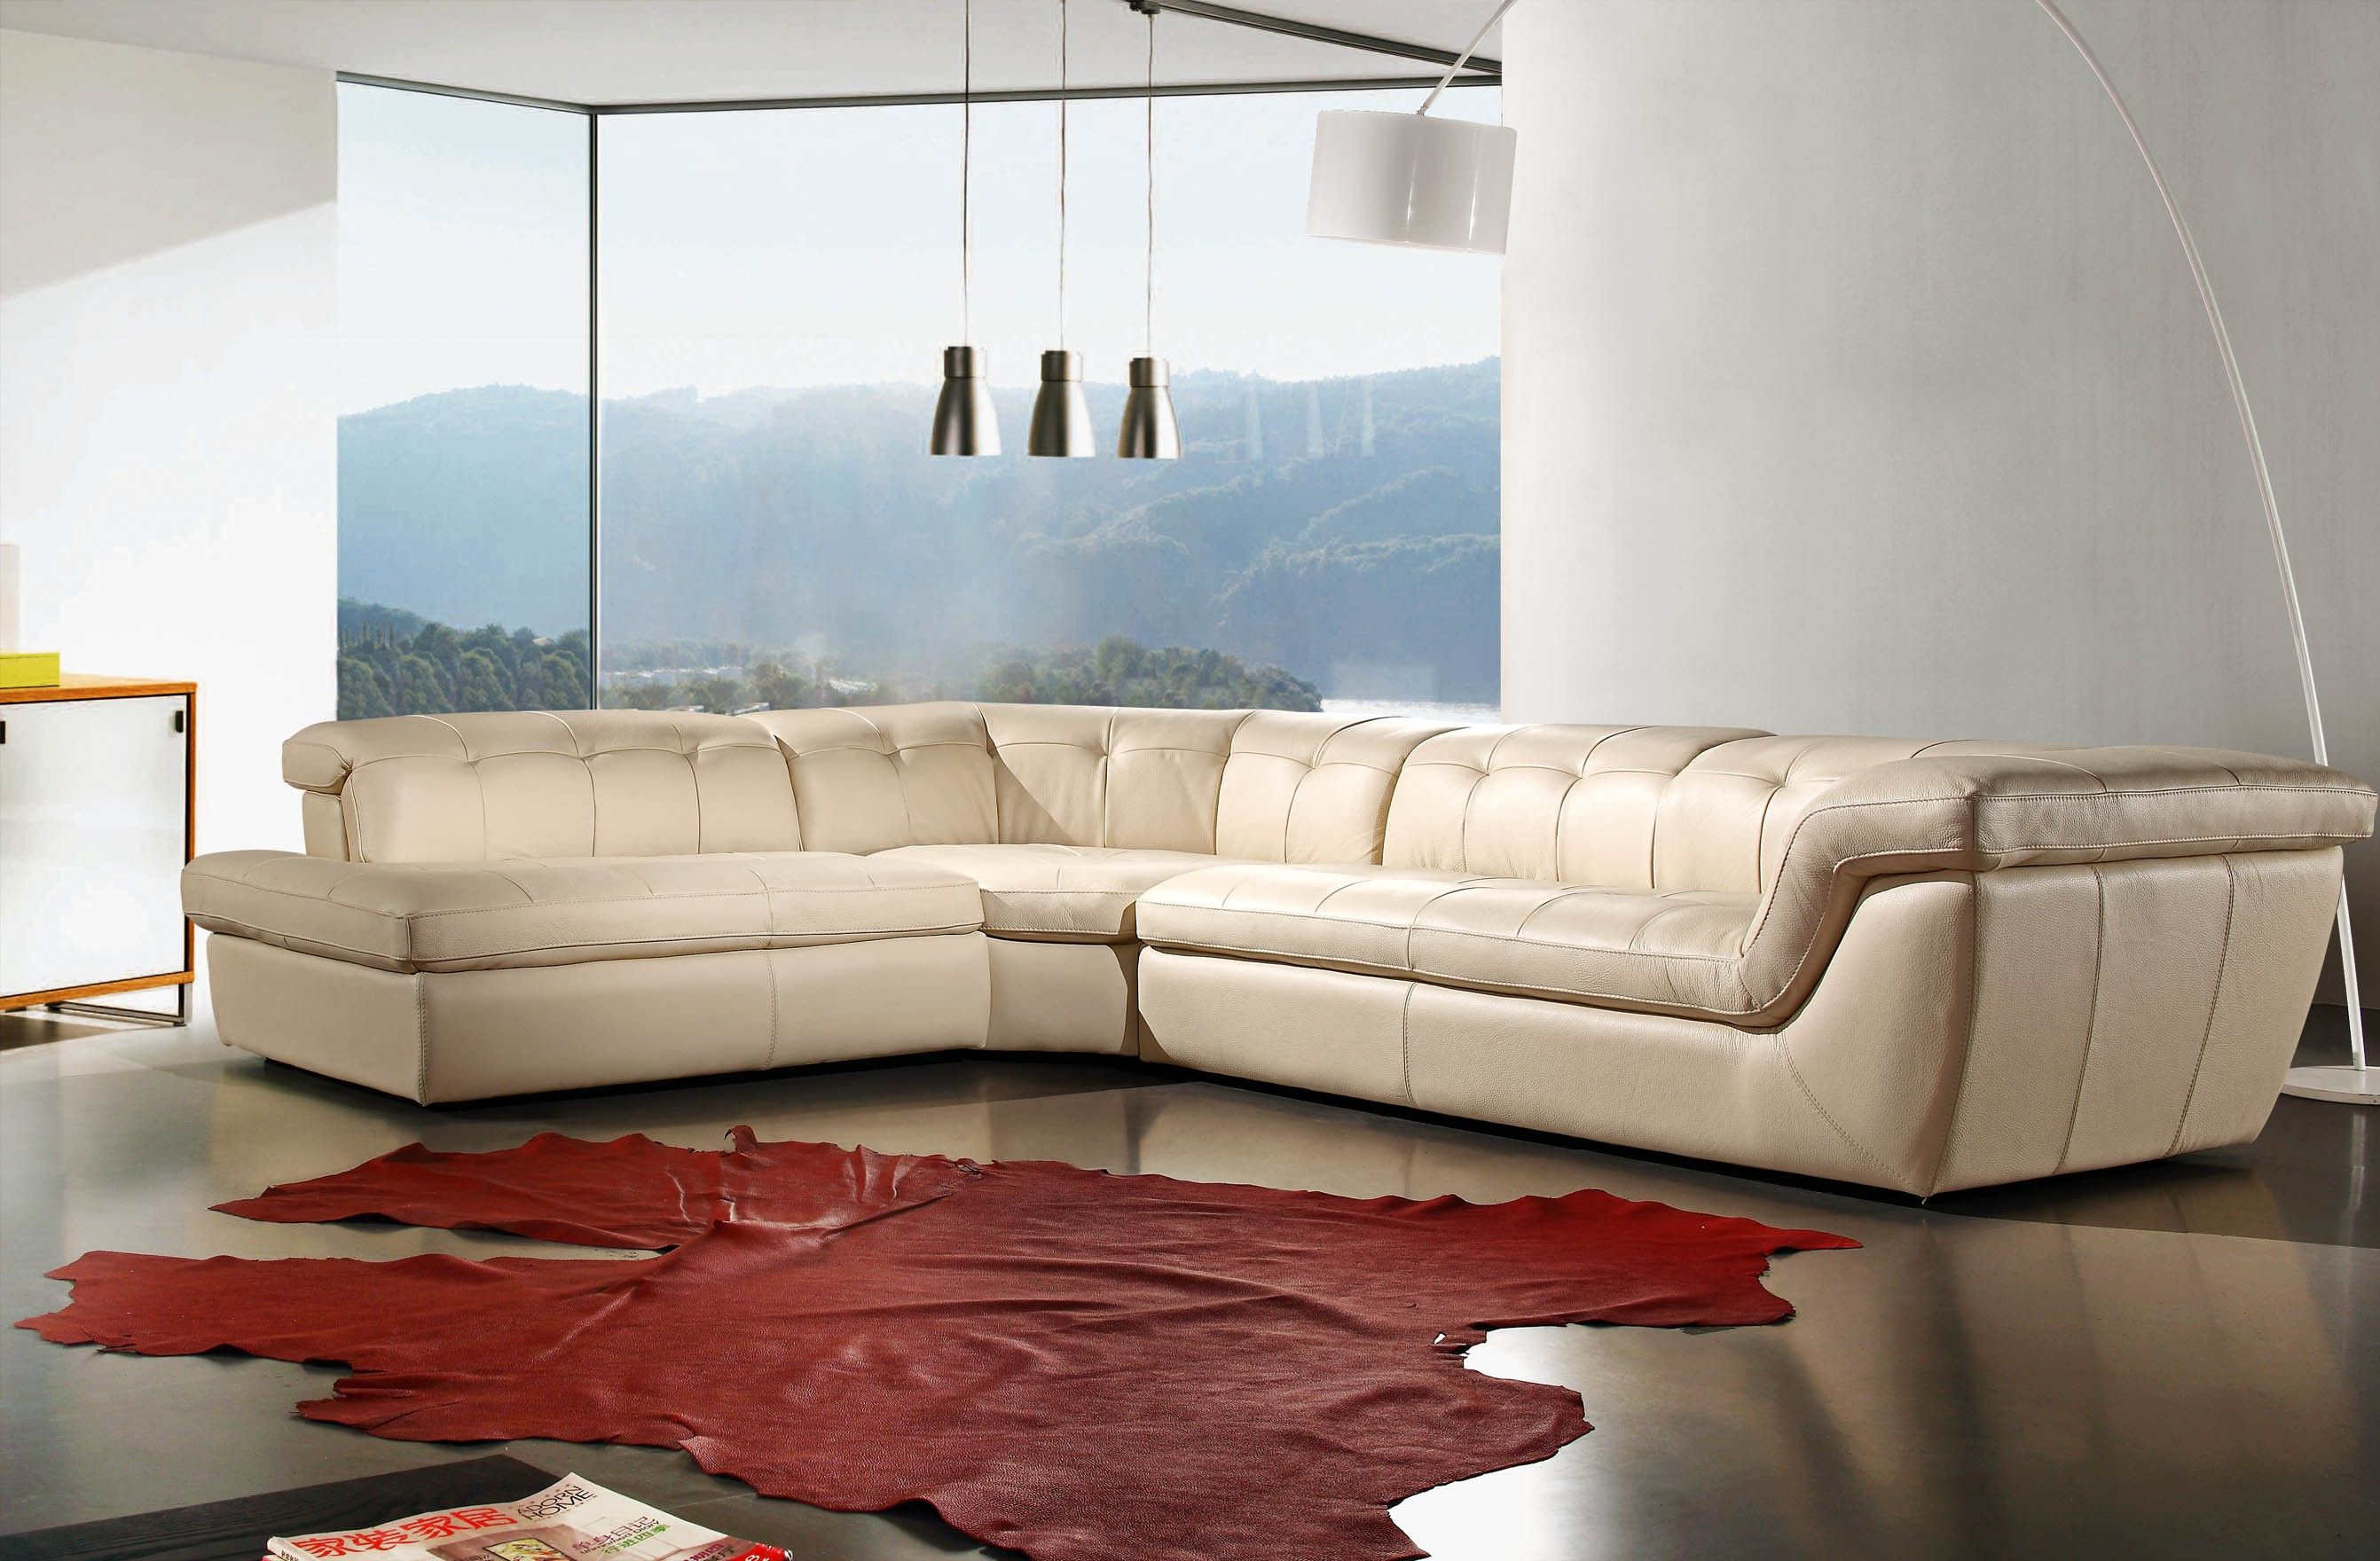 Living Room Design With Sectional Sofa Mesmerizing American Contemporary Sofa 10 Тыс Изображений Найдено В Яндекс Design Decoration